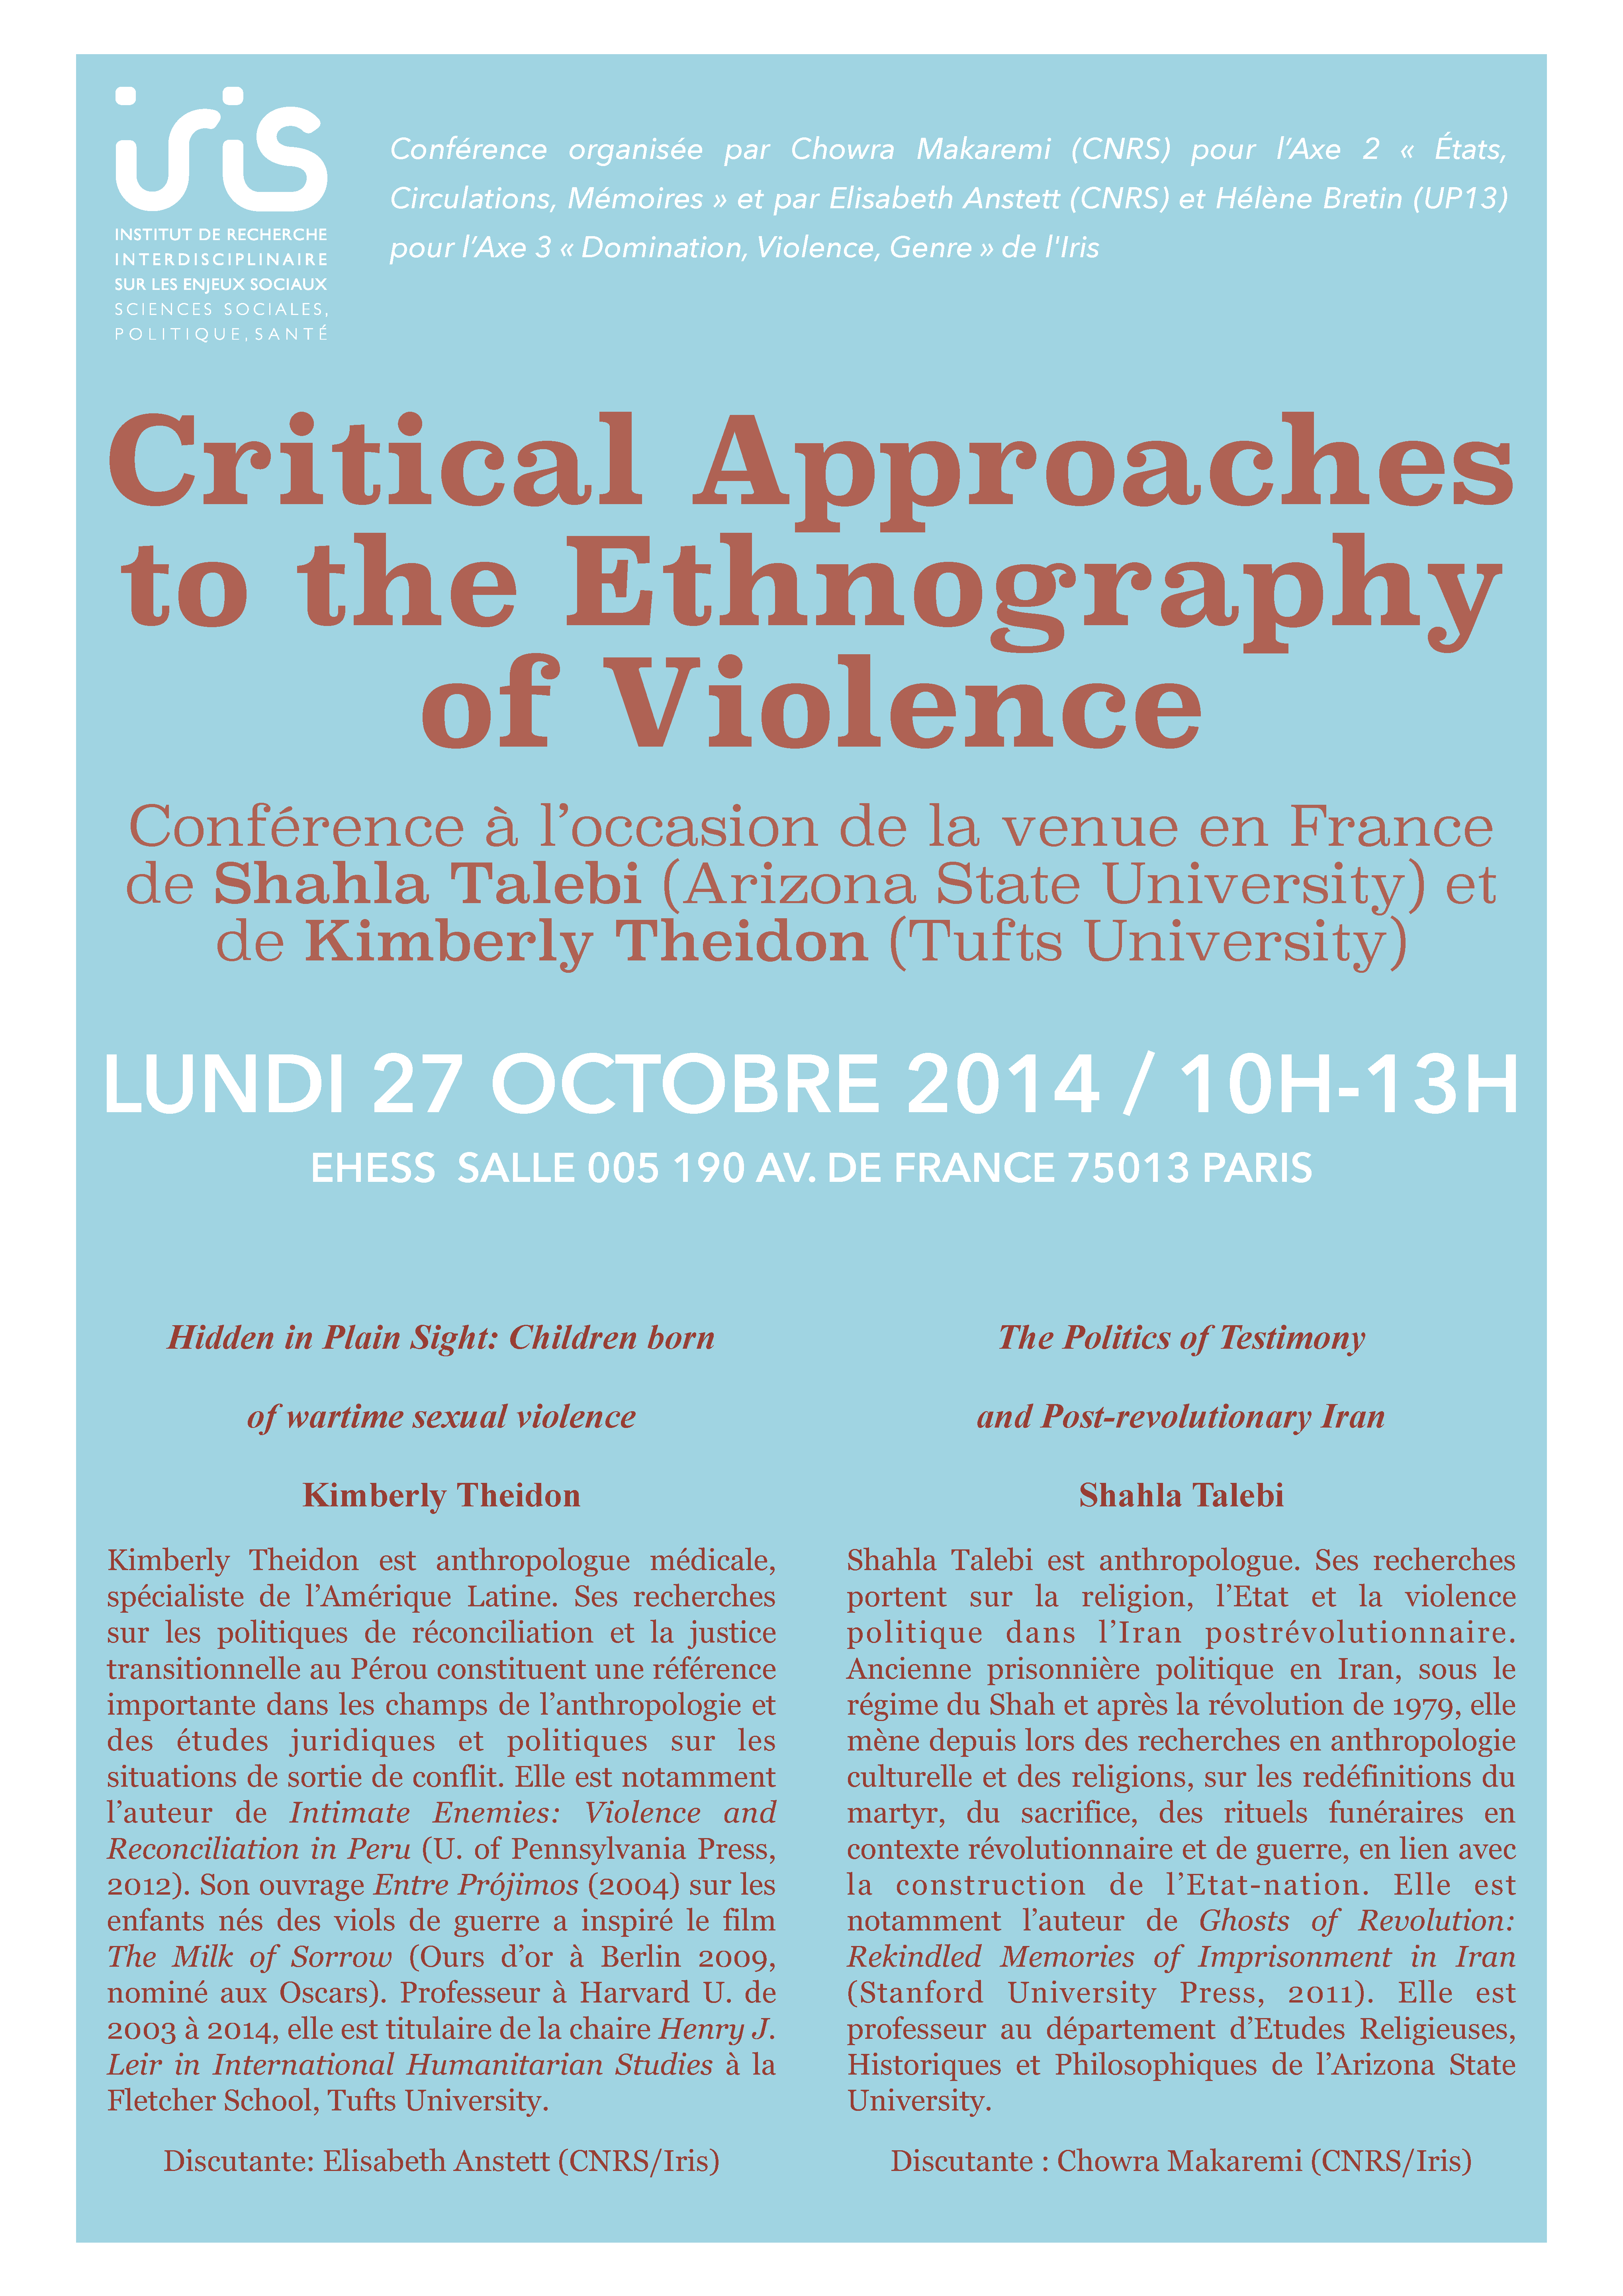 Critical Approaches to the Ethnography of Violence > 27 octobre 2014